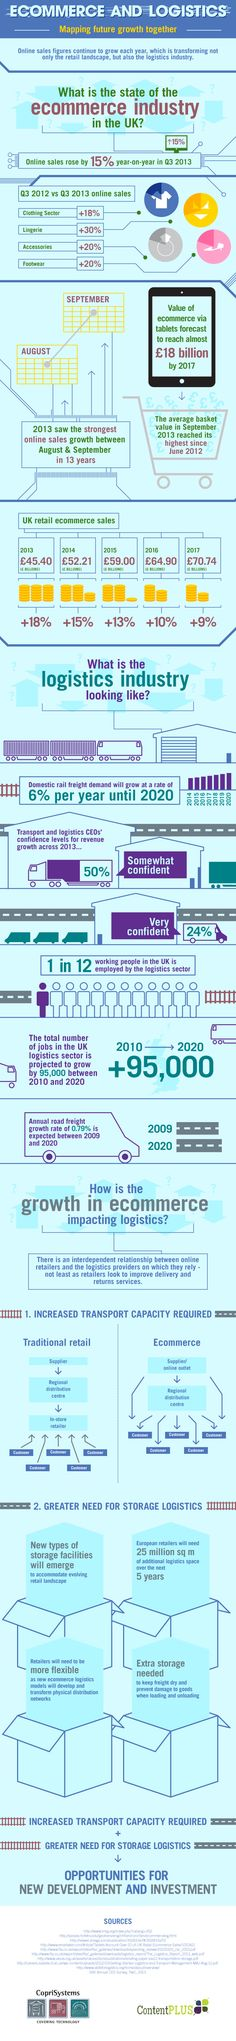 Our infographic for Coprisystems looks at the impact of ecommerce growth on the logistics sector.